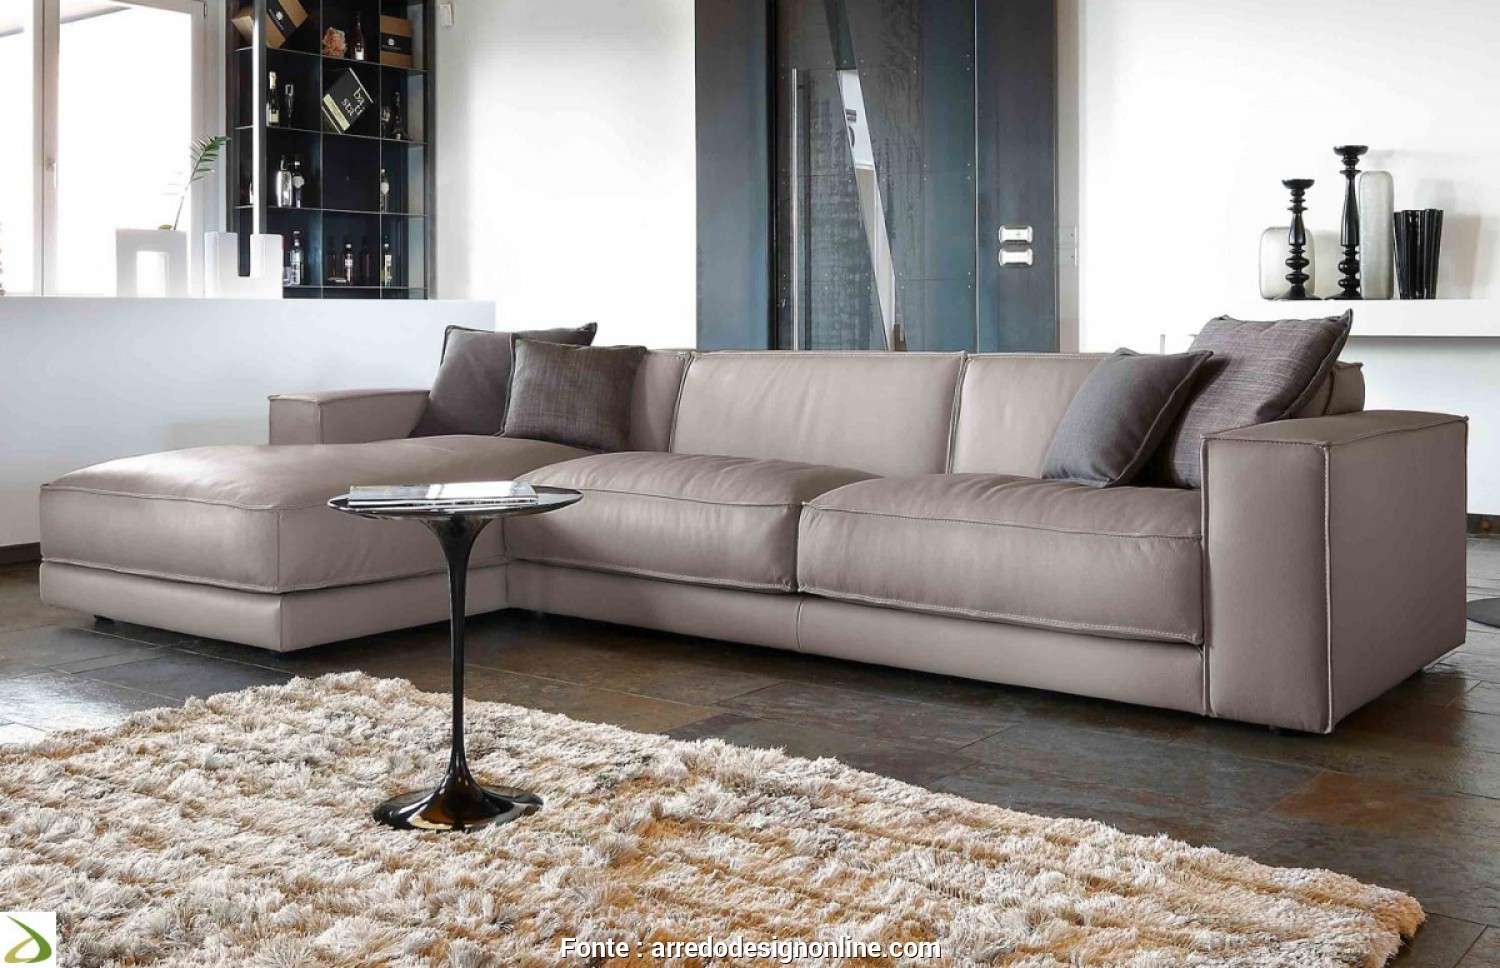 Divano Chaise Longue, Cm, Semplice Contemporary Sofa With Leather Chaise Longue